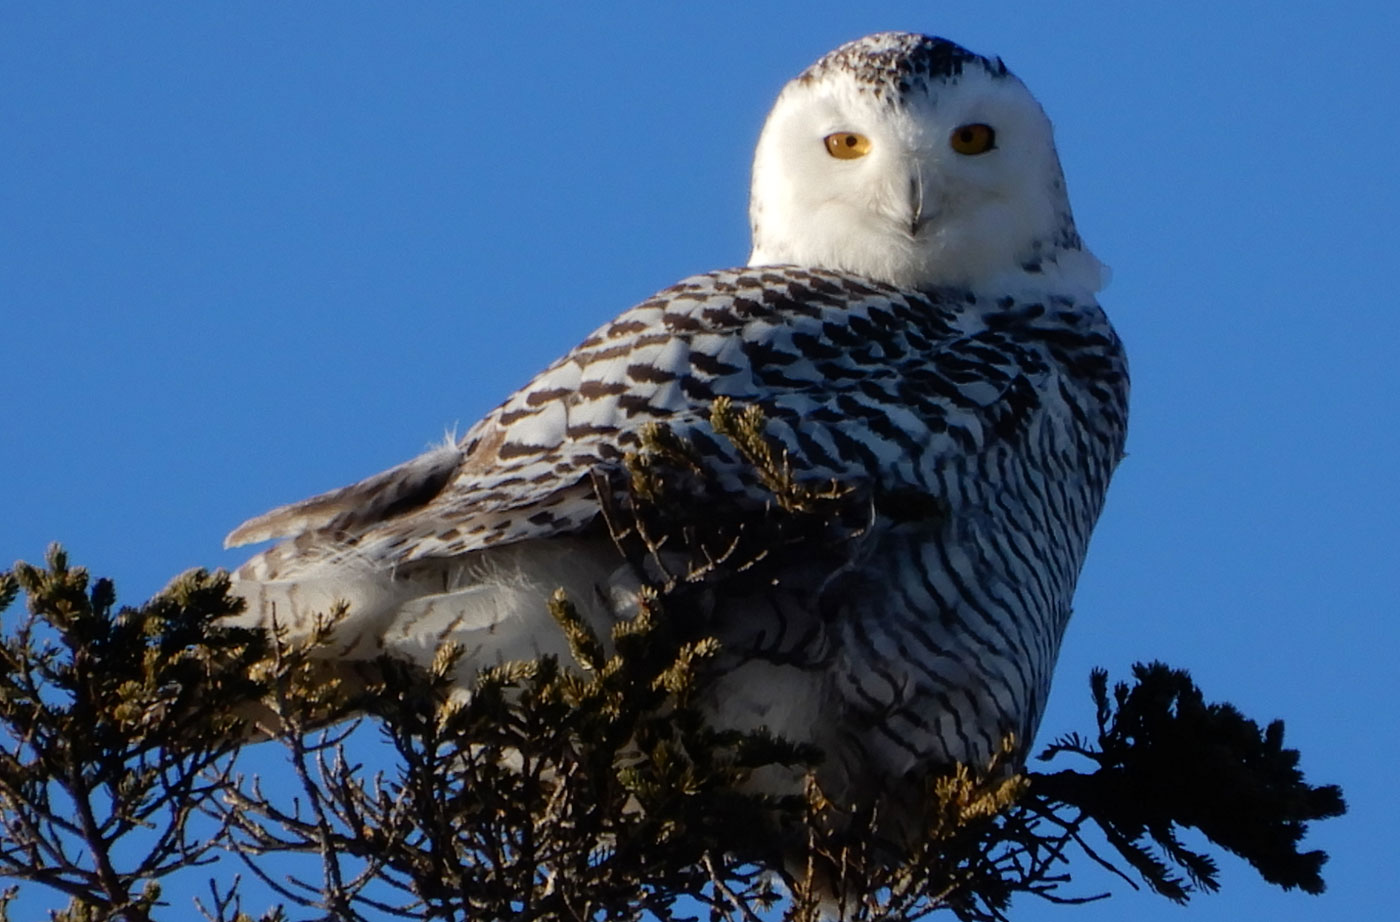 Snowy Owl in East Boothbay by Jon Luoma